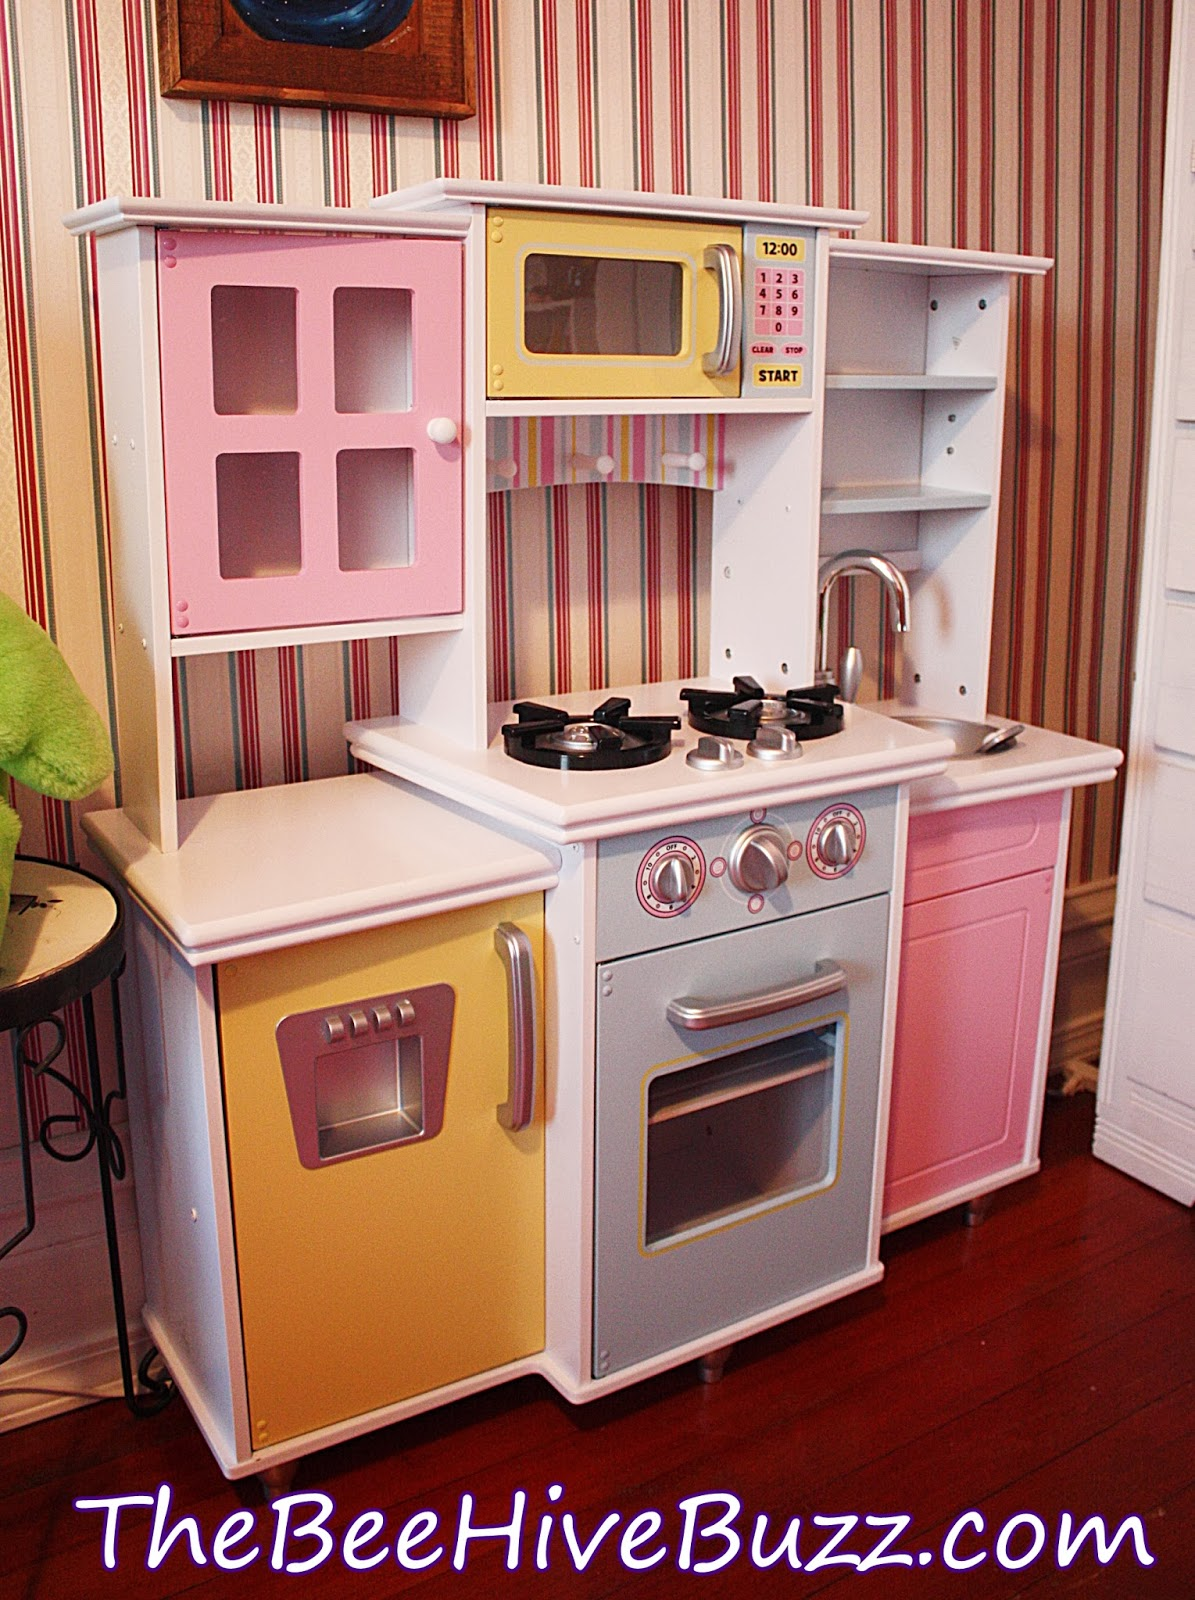 ... The Bee Hive Buzz: Get Cooking With KidKraft Play Kitchens!